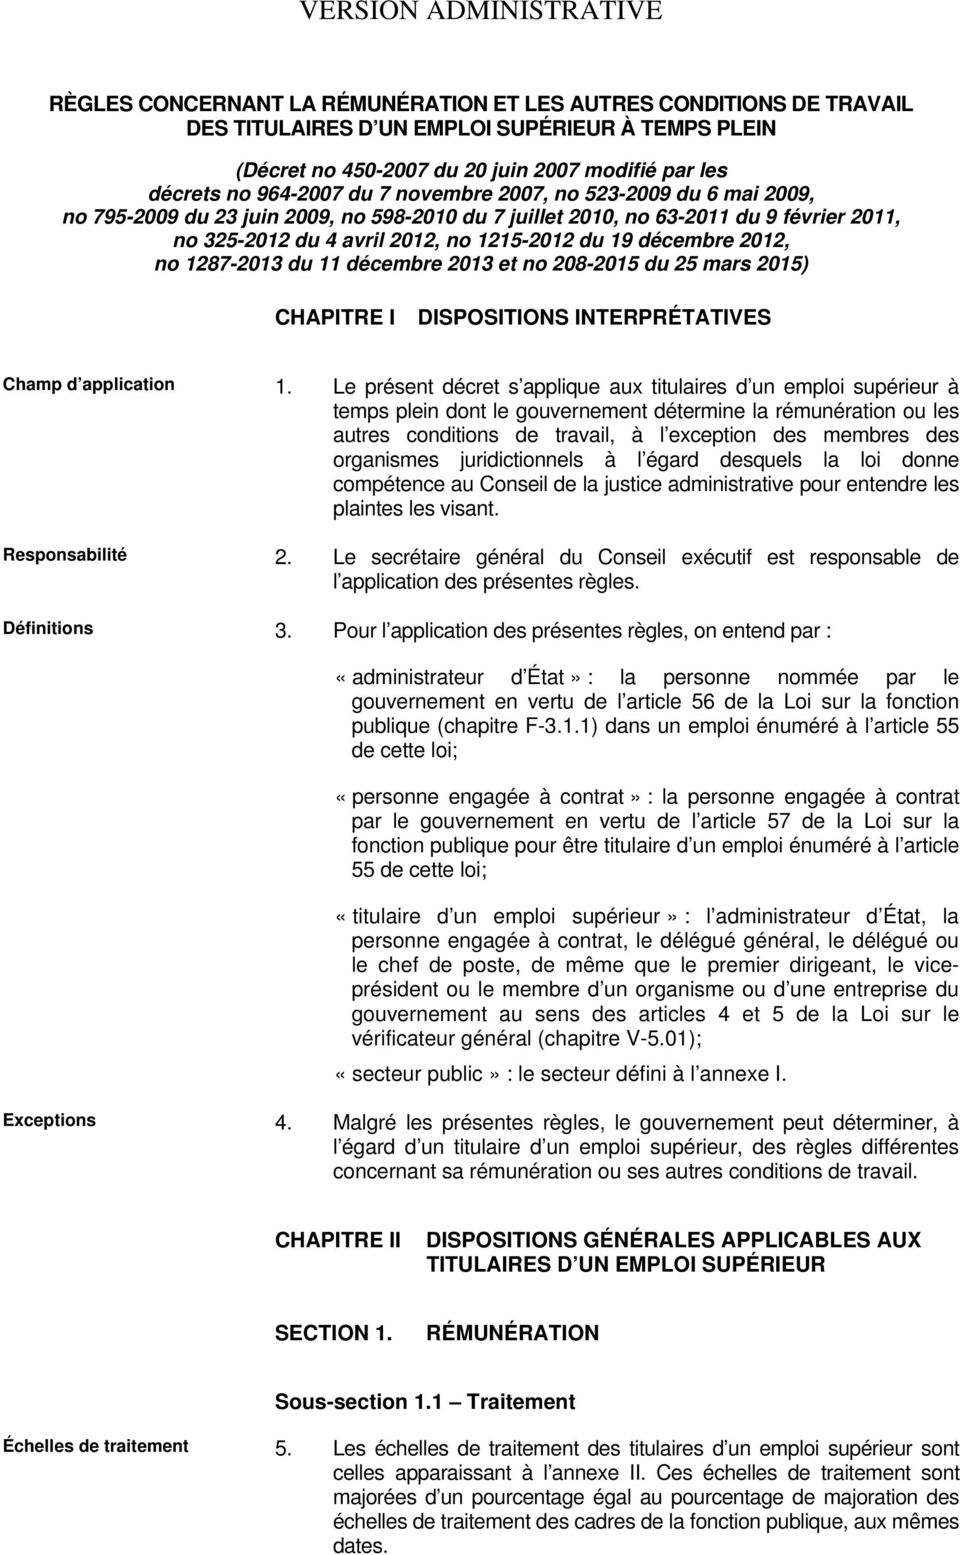 du 19 décembre 2012, no 1287-2013 du 11 décembre 2013 et no 208-2015 du 25 mars 2015) CHAPITRE I DISPOSITIONS INTERPRÉTATIVES Champ d application 1.